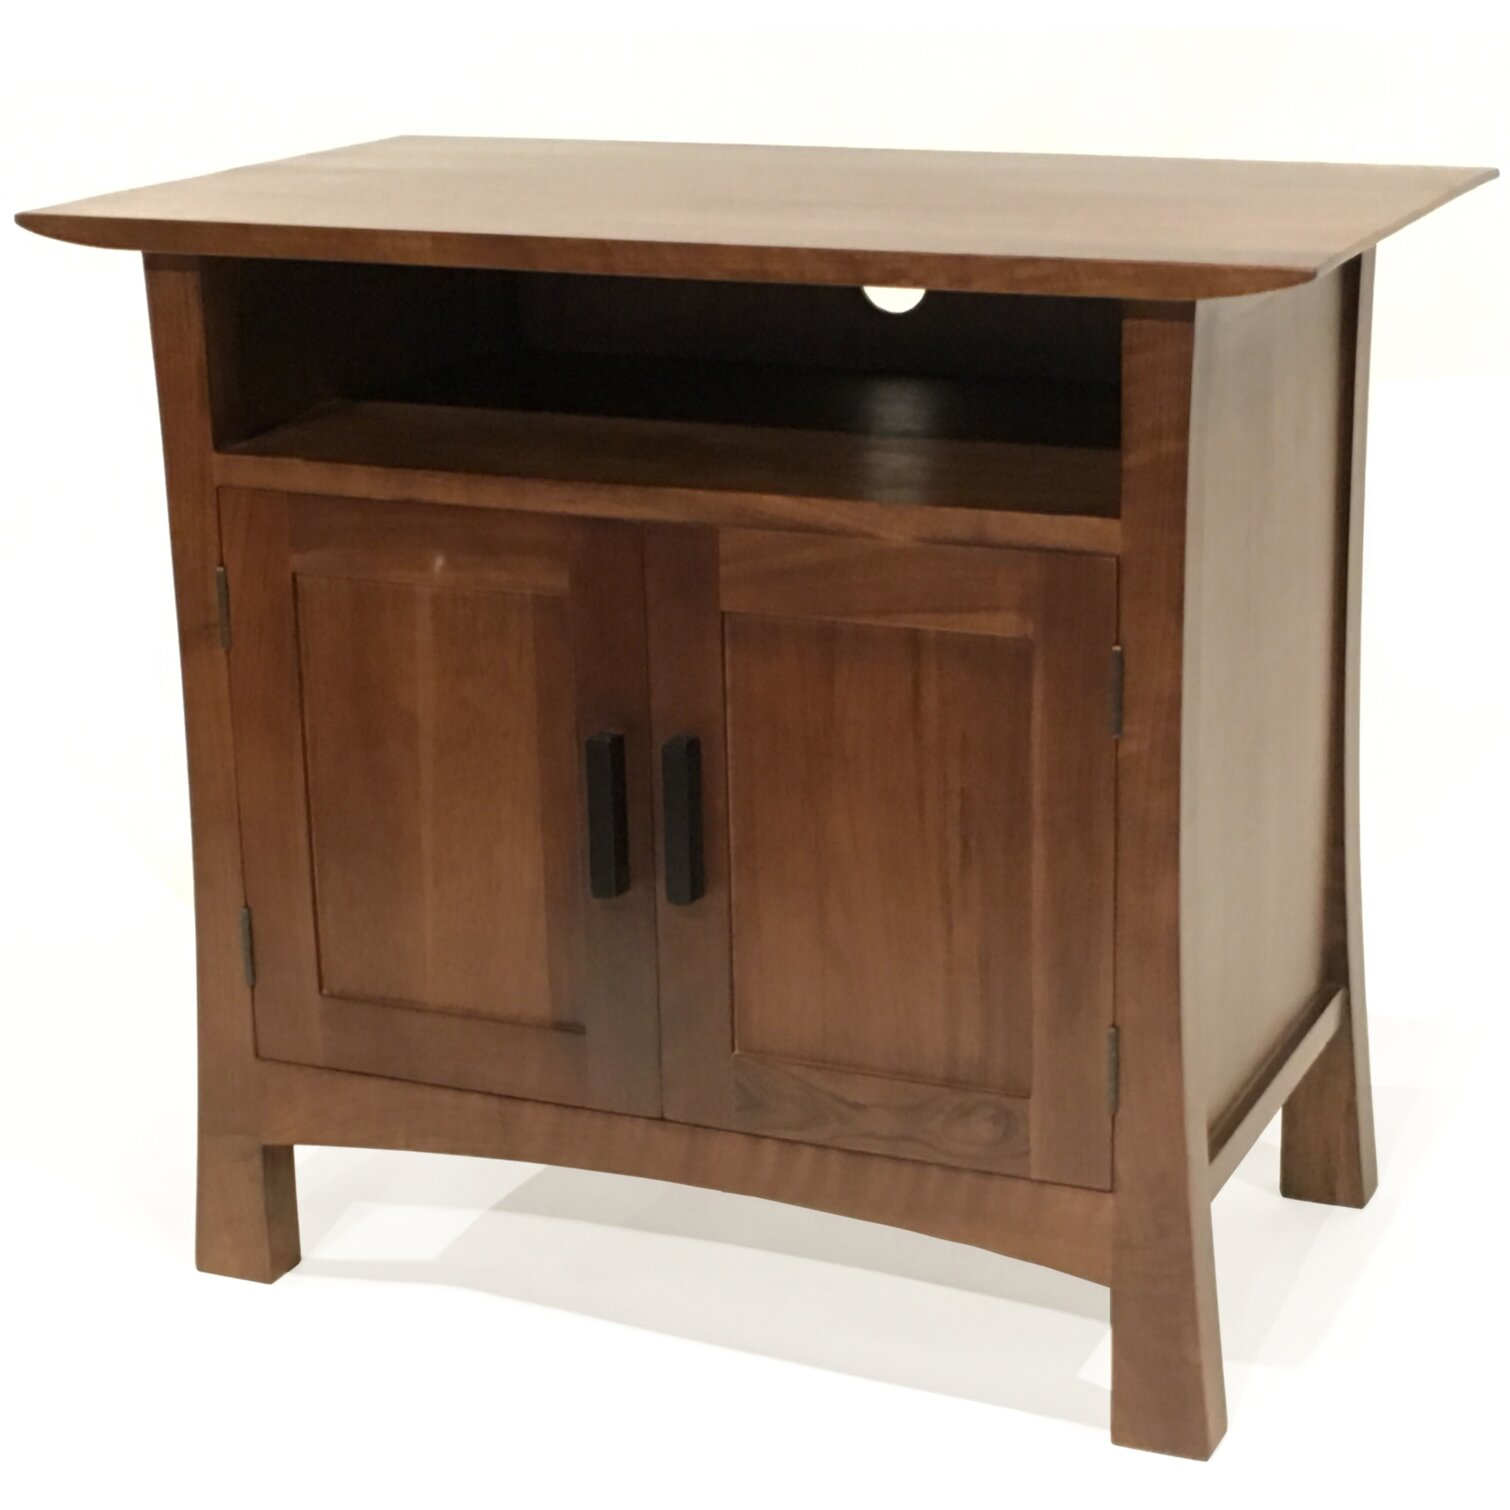 Gingko home furnishings saito tv stand wayfair Home furniture tv stands